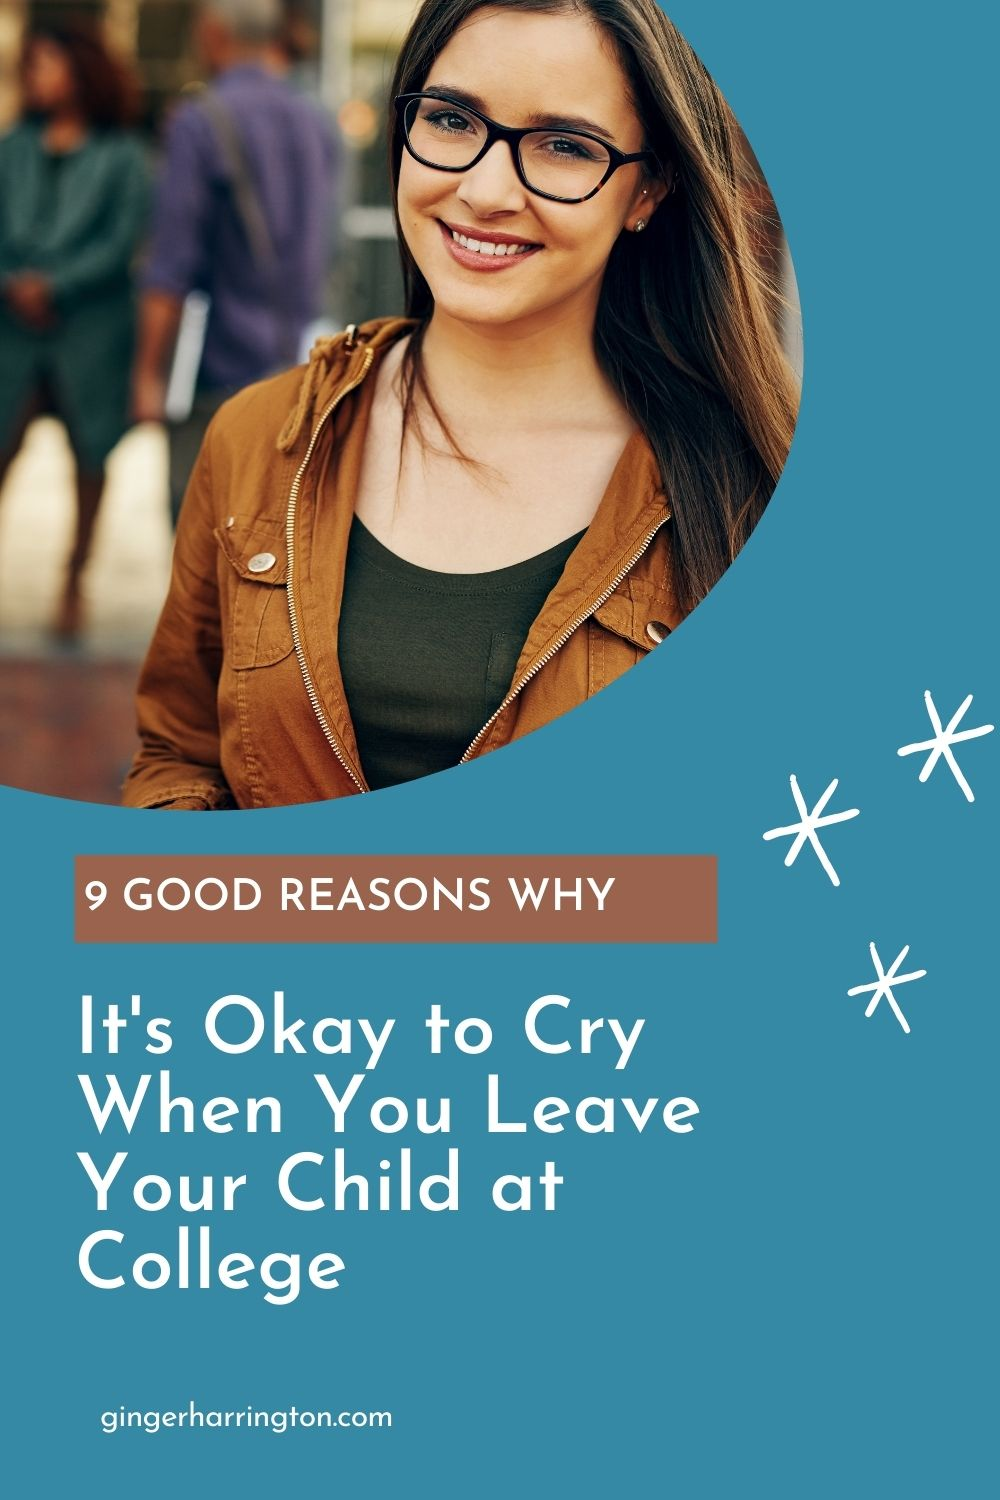 Taking your child to college is an emotional time for families, especially moms. Reflections on 9 good reasons why it's okay to shed those tears when you say goodbye to your kids.